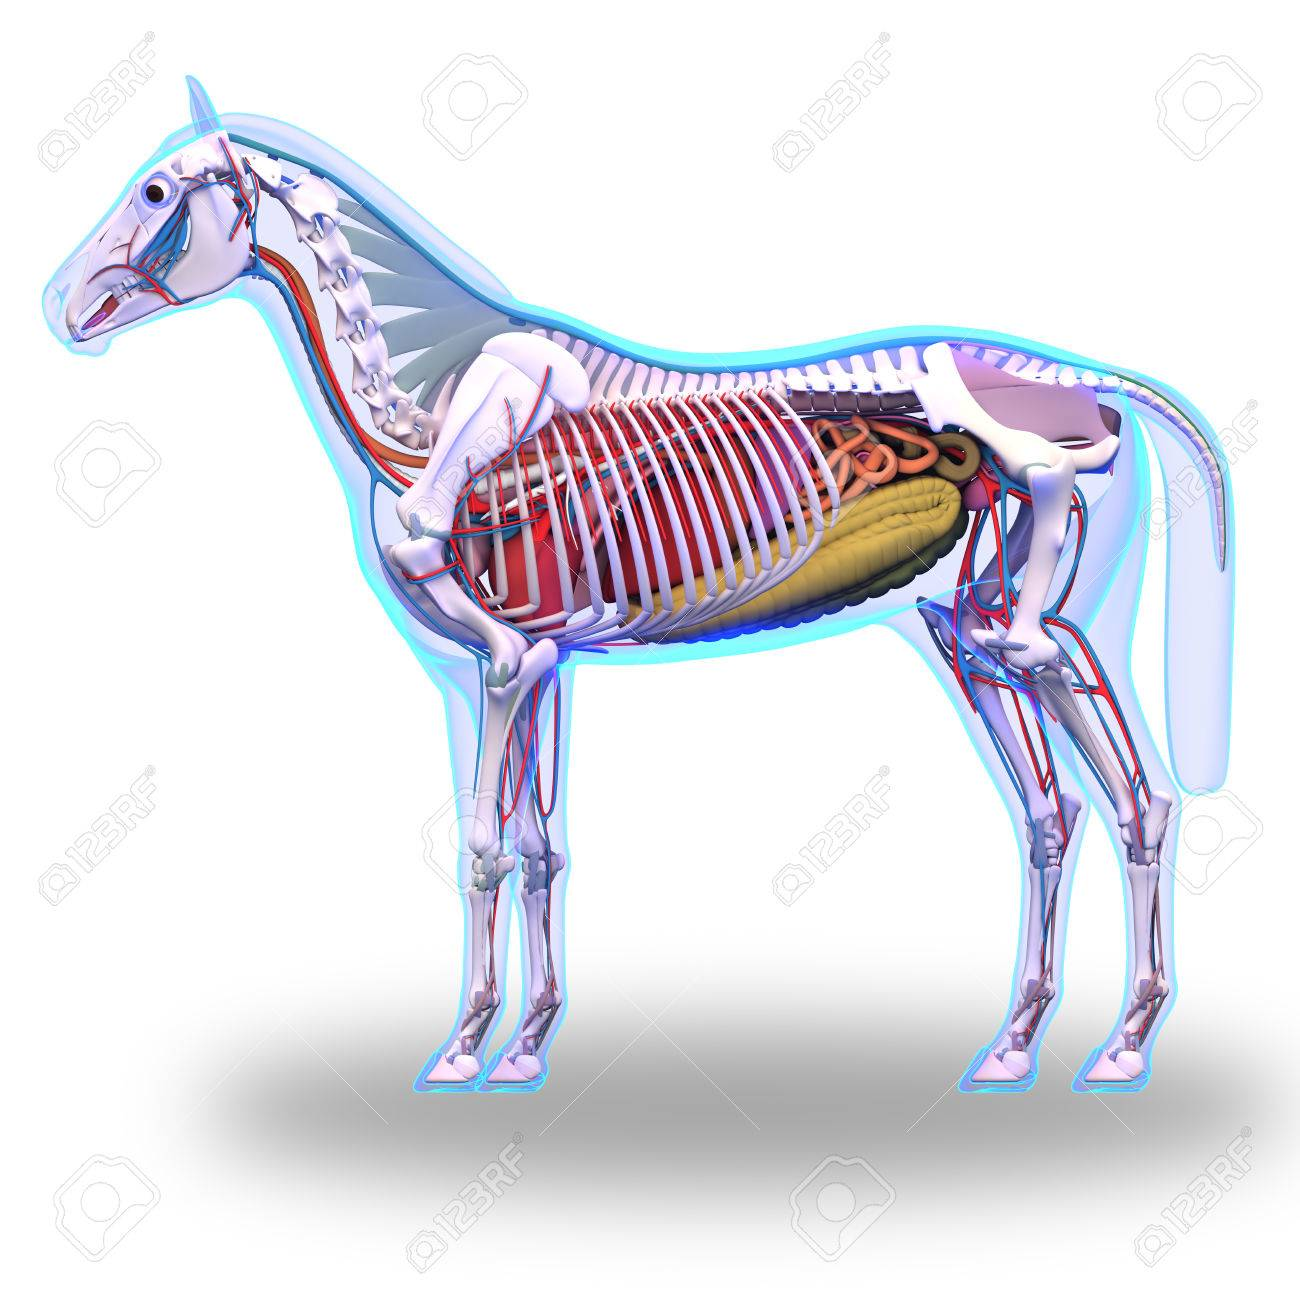 Horse Anatomy - Internal Anatomy Of Horse Isolated On White Stock ...